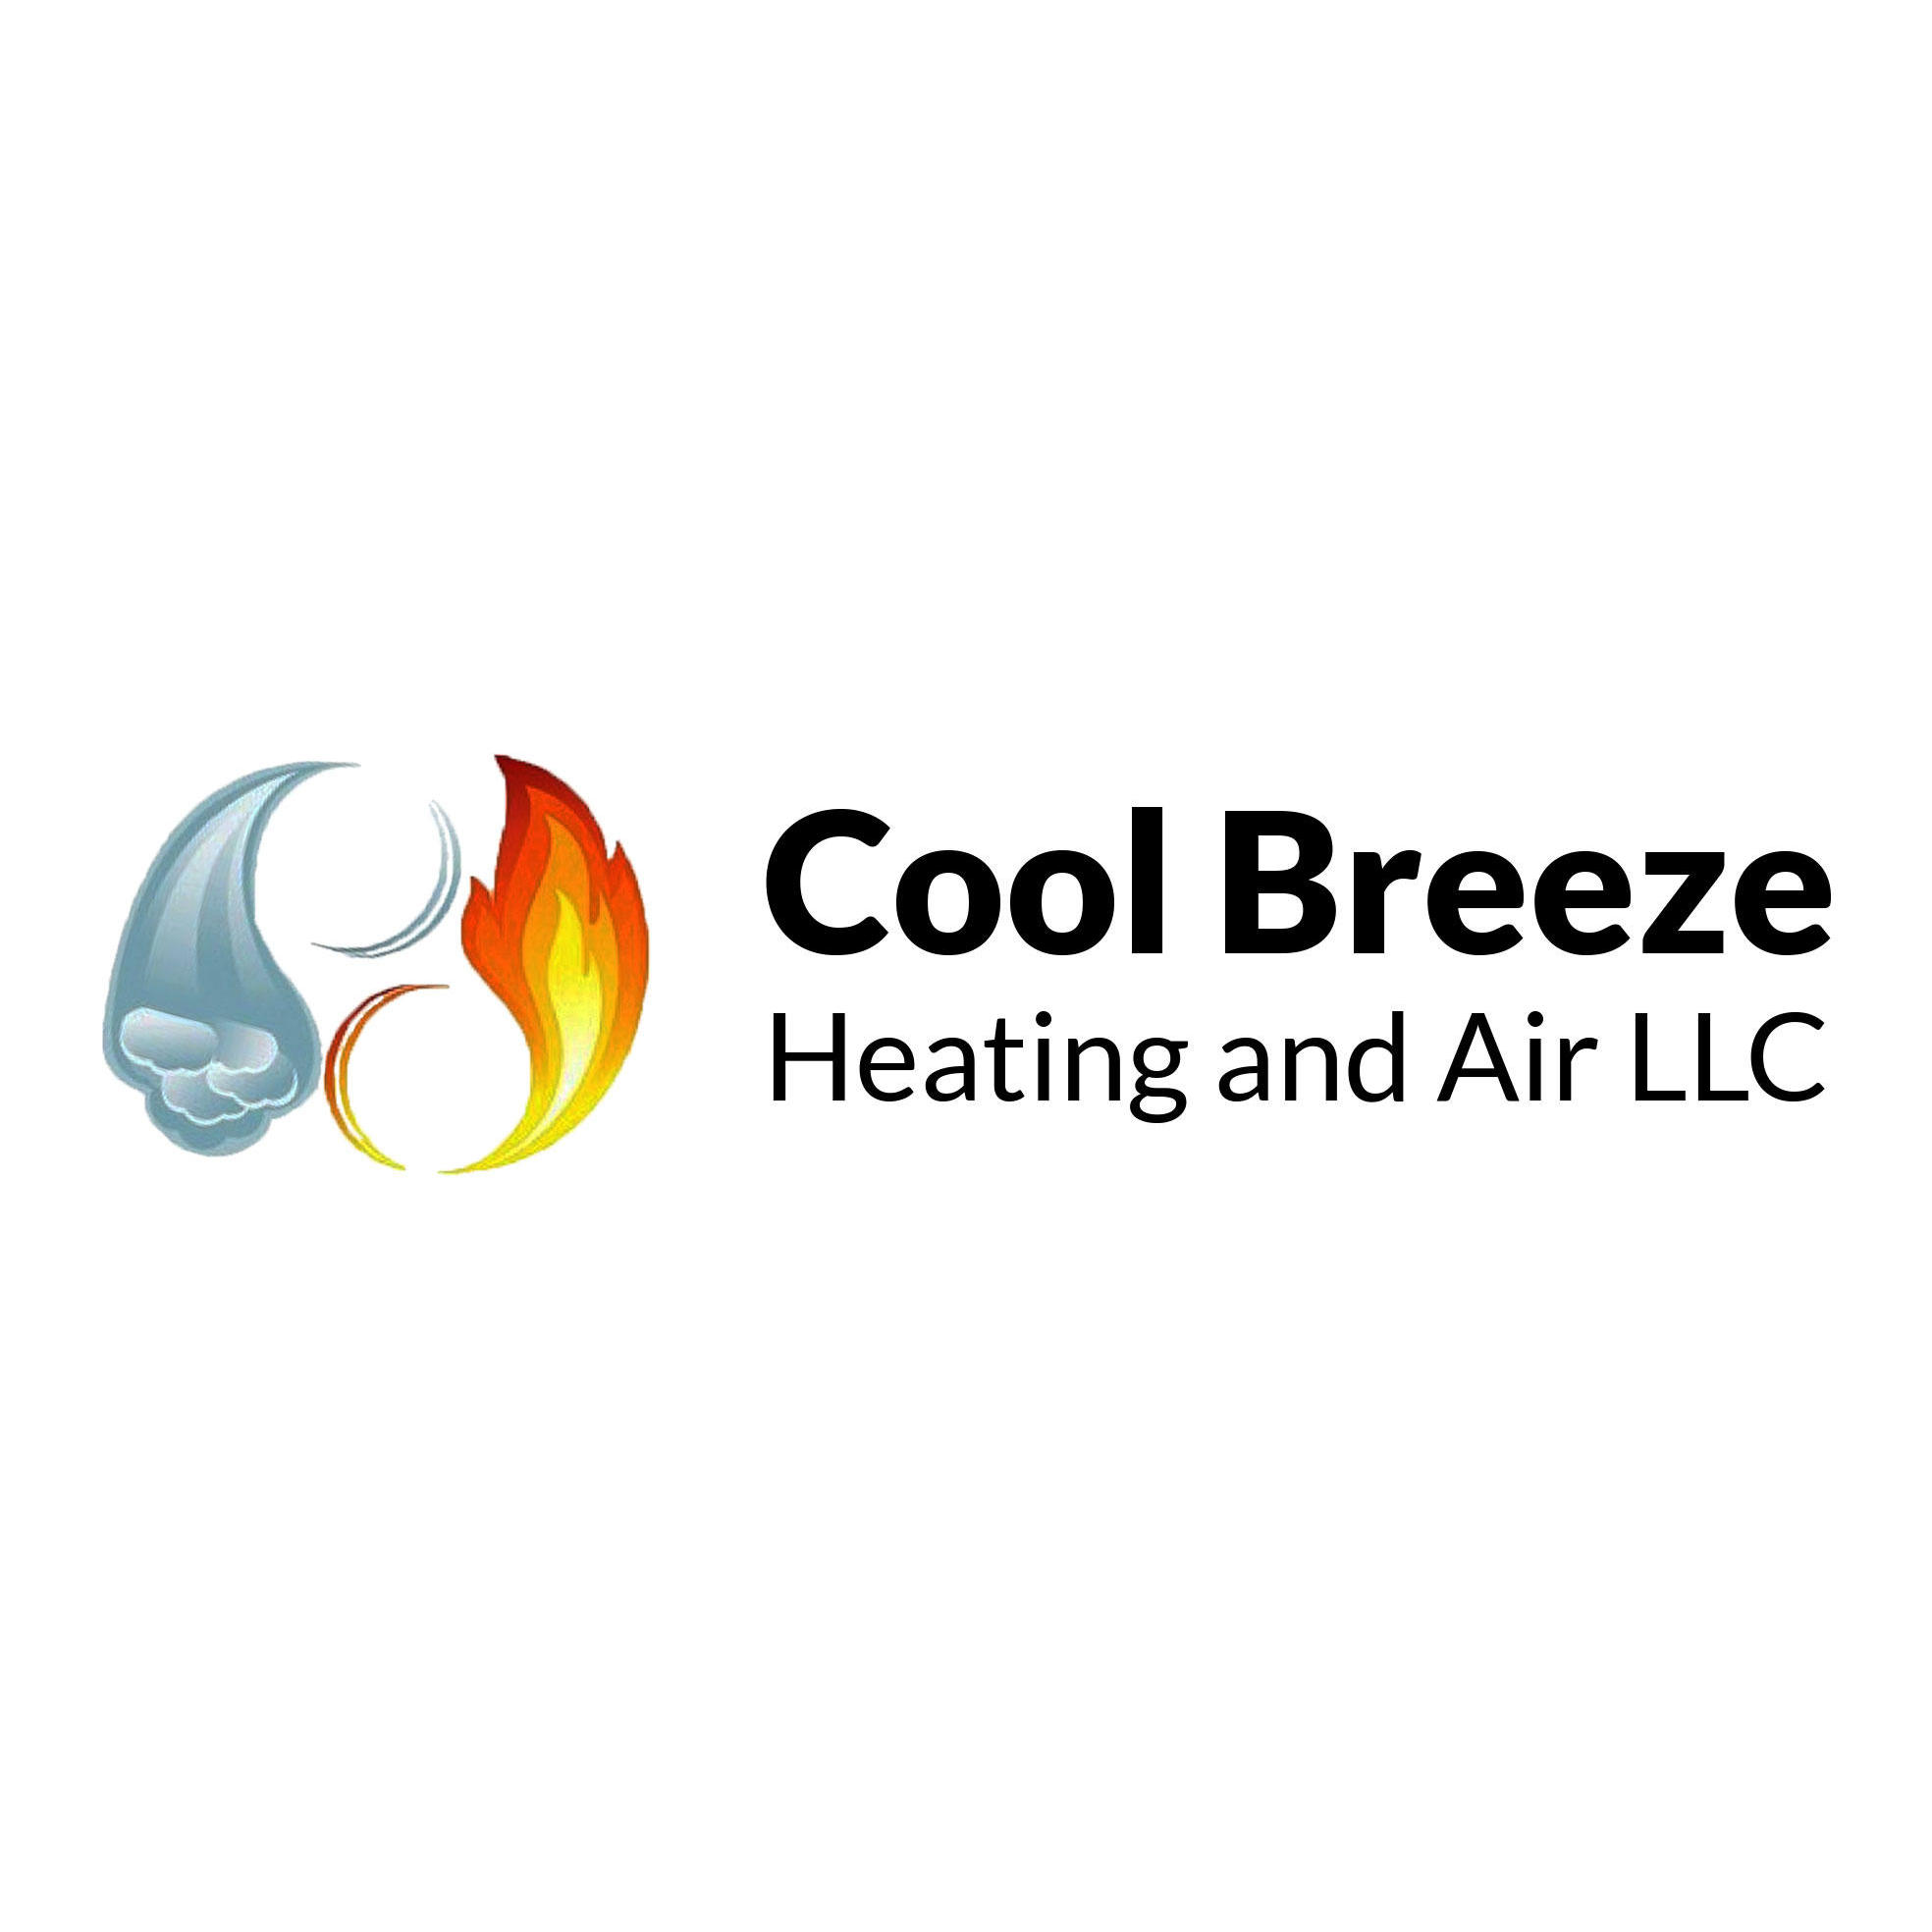 Cool Breeze Heating and Air LLC